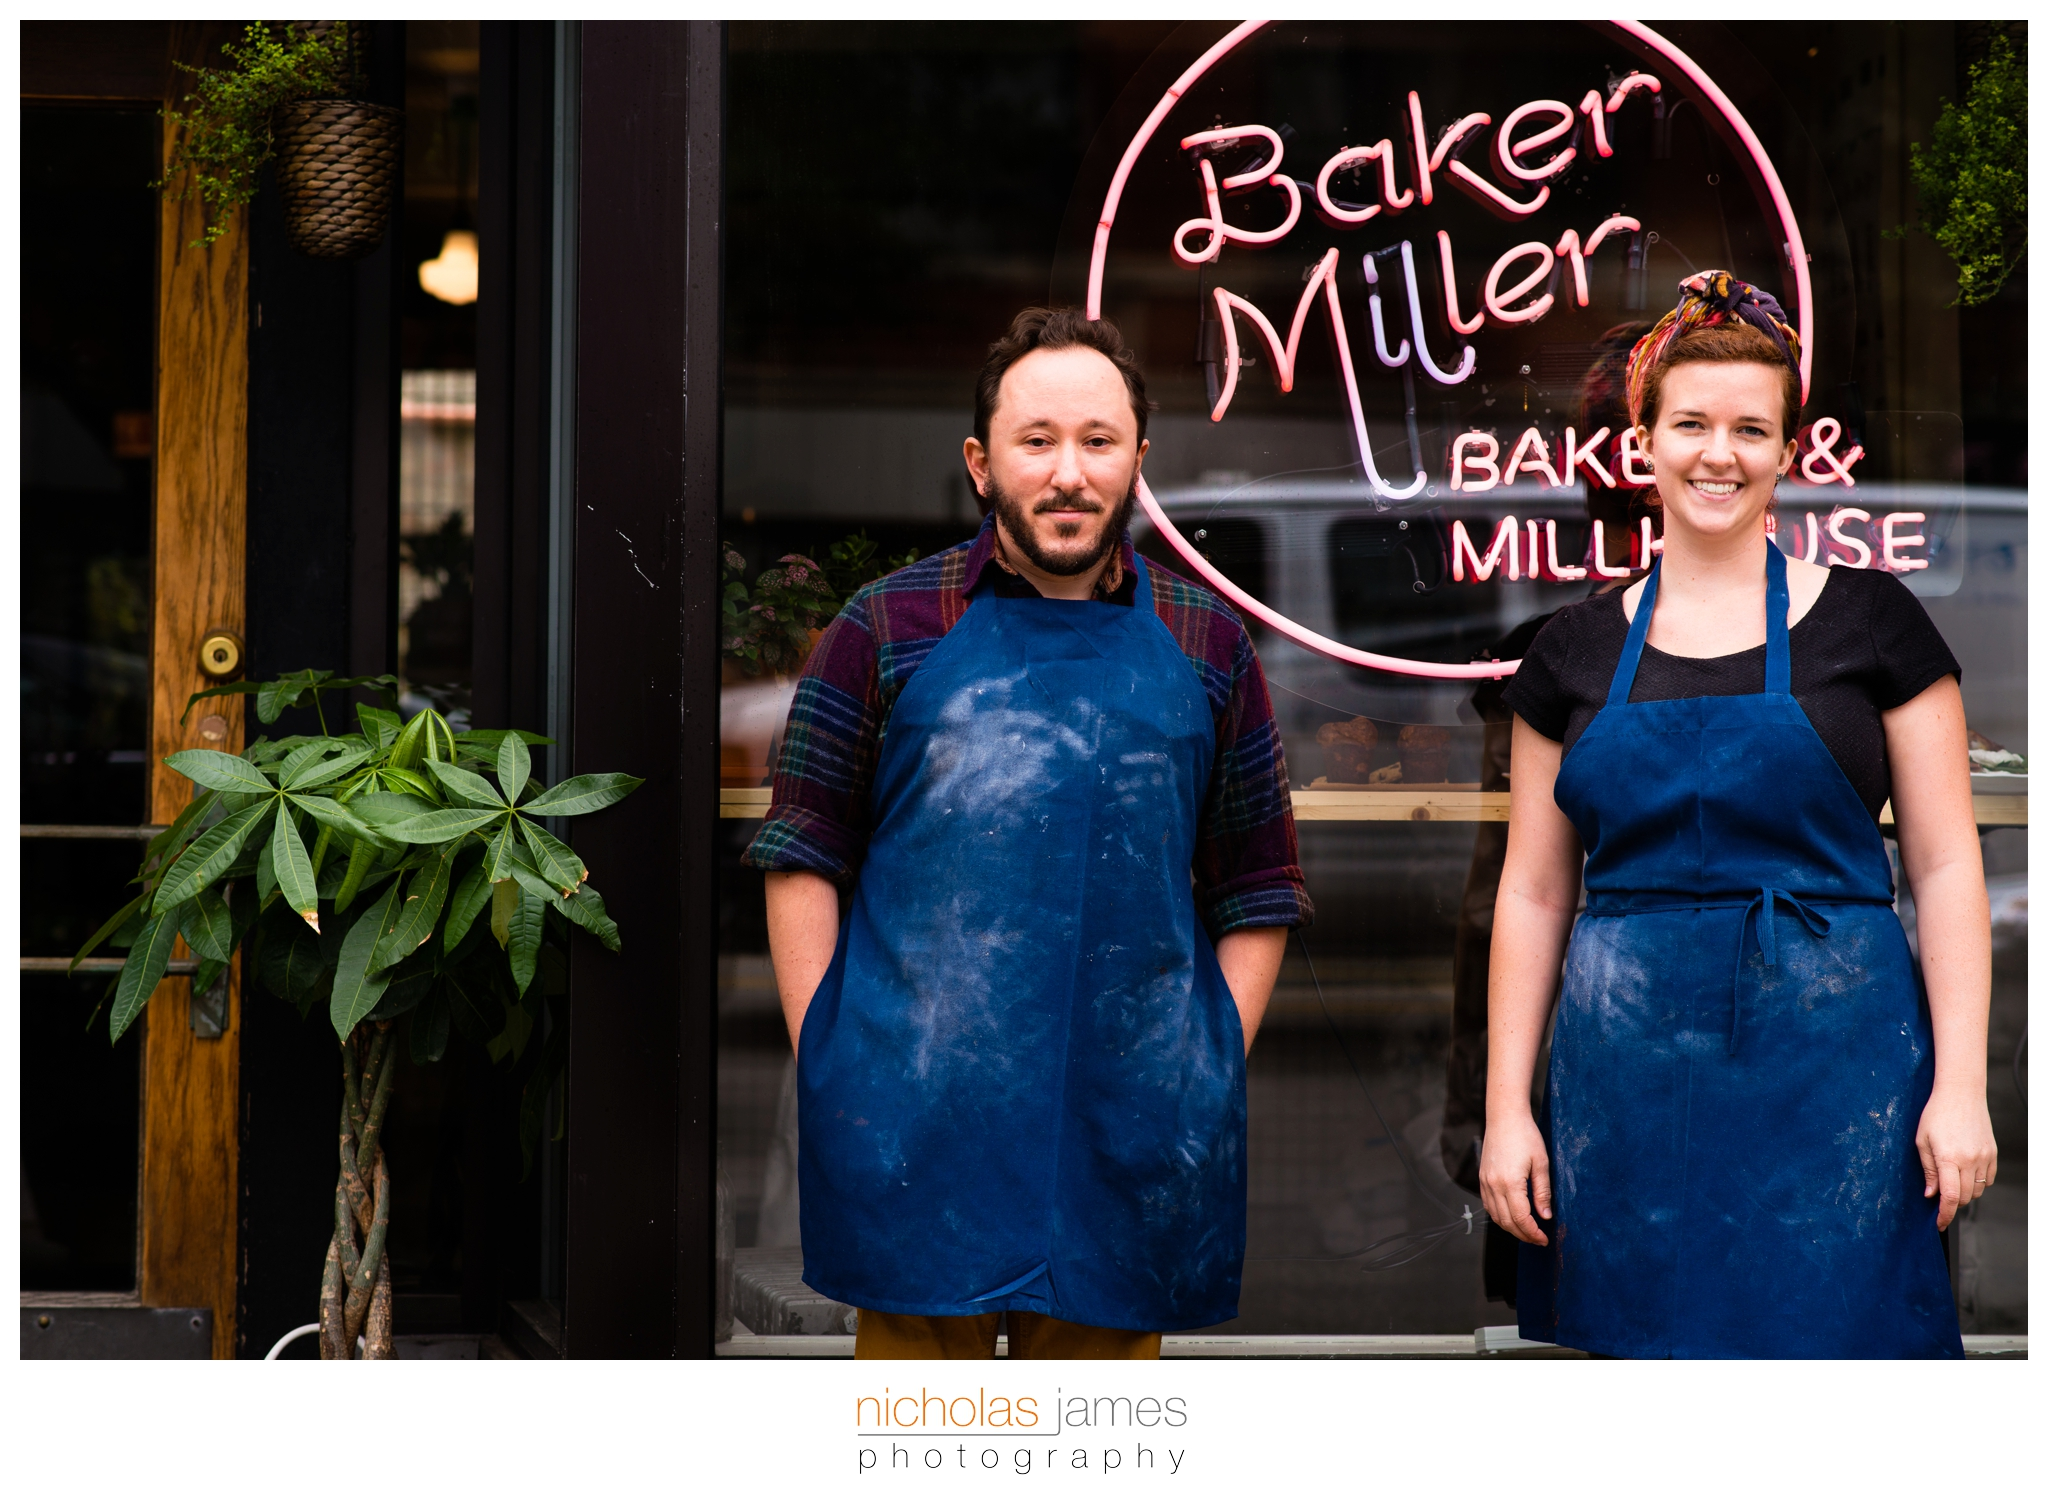 chicago-baker-miller-pie-food-photography-1